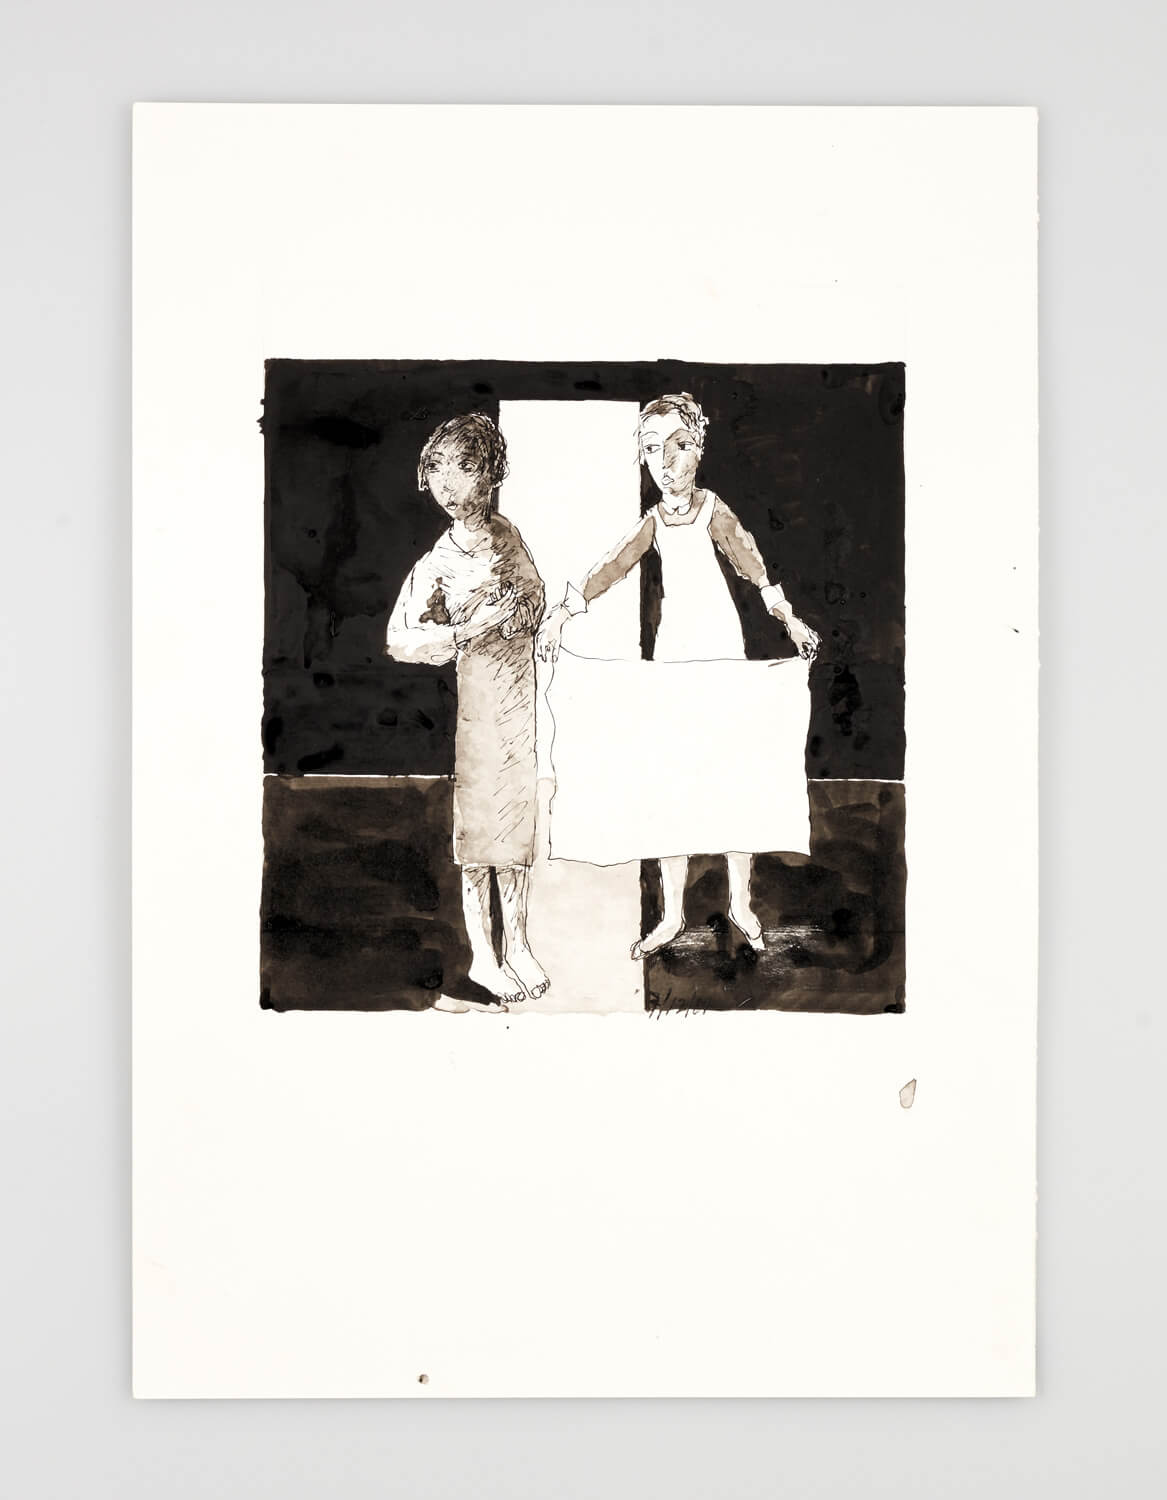 JB043 - Two Women - Being dressed - 2001 - 50 x 35 cm - Indian ink and wash on paper